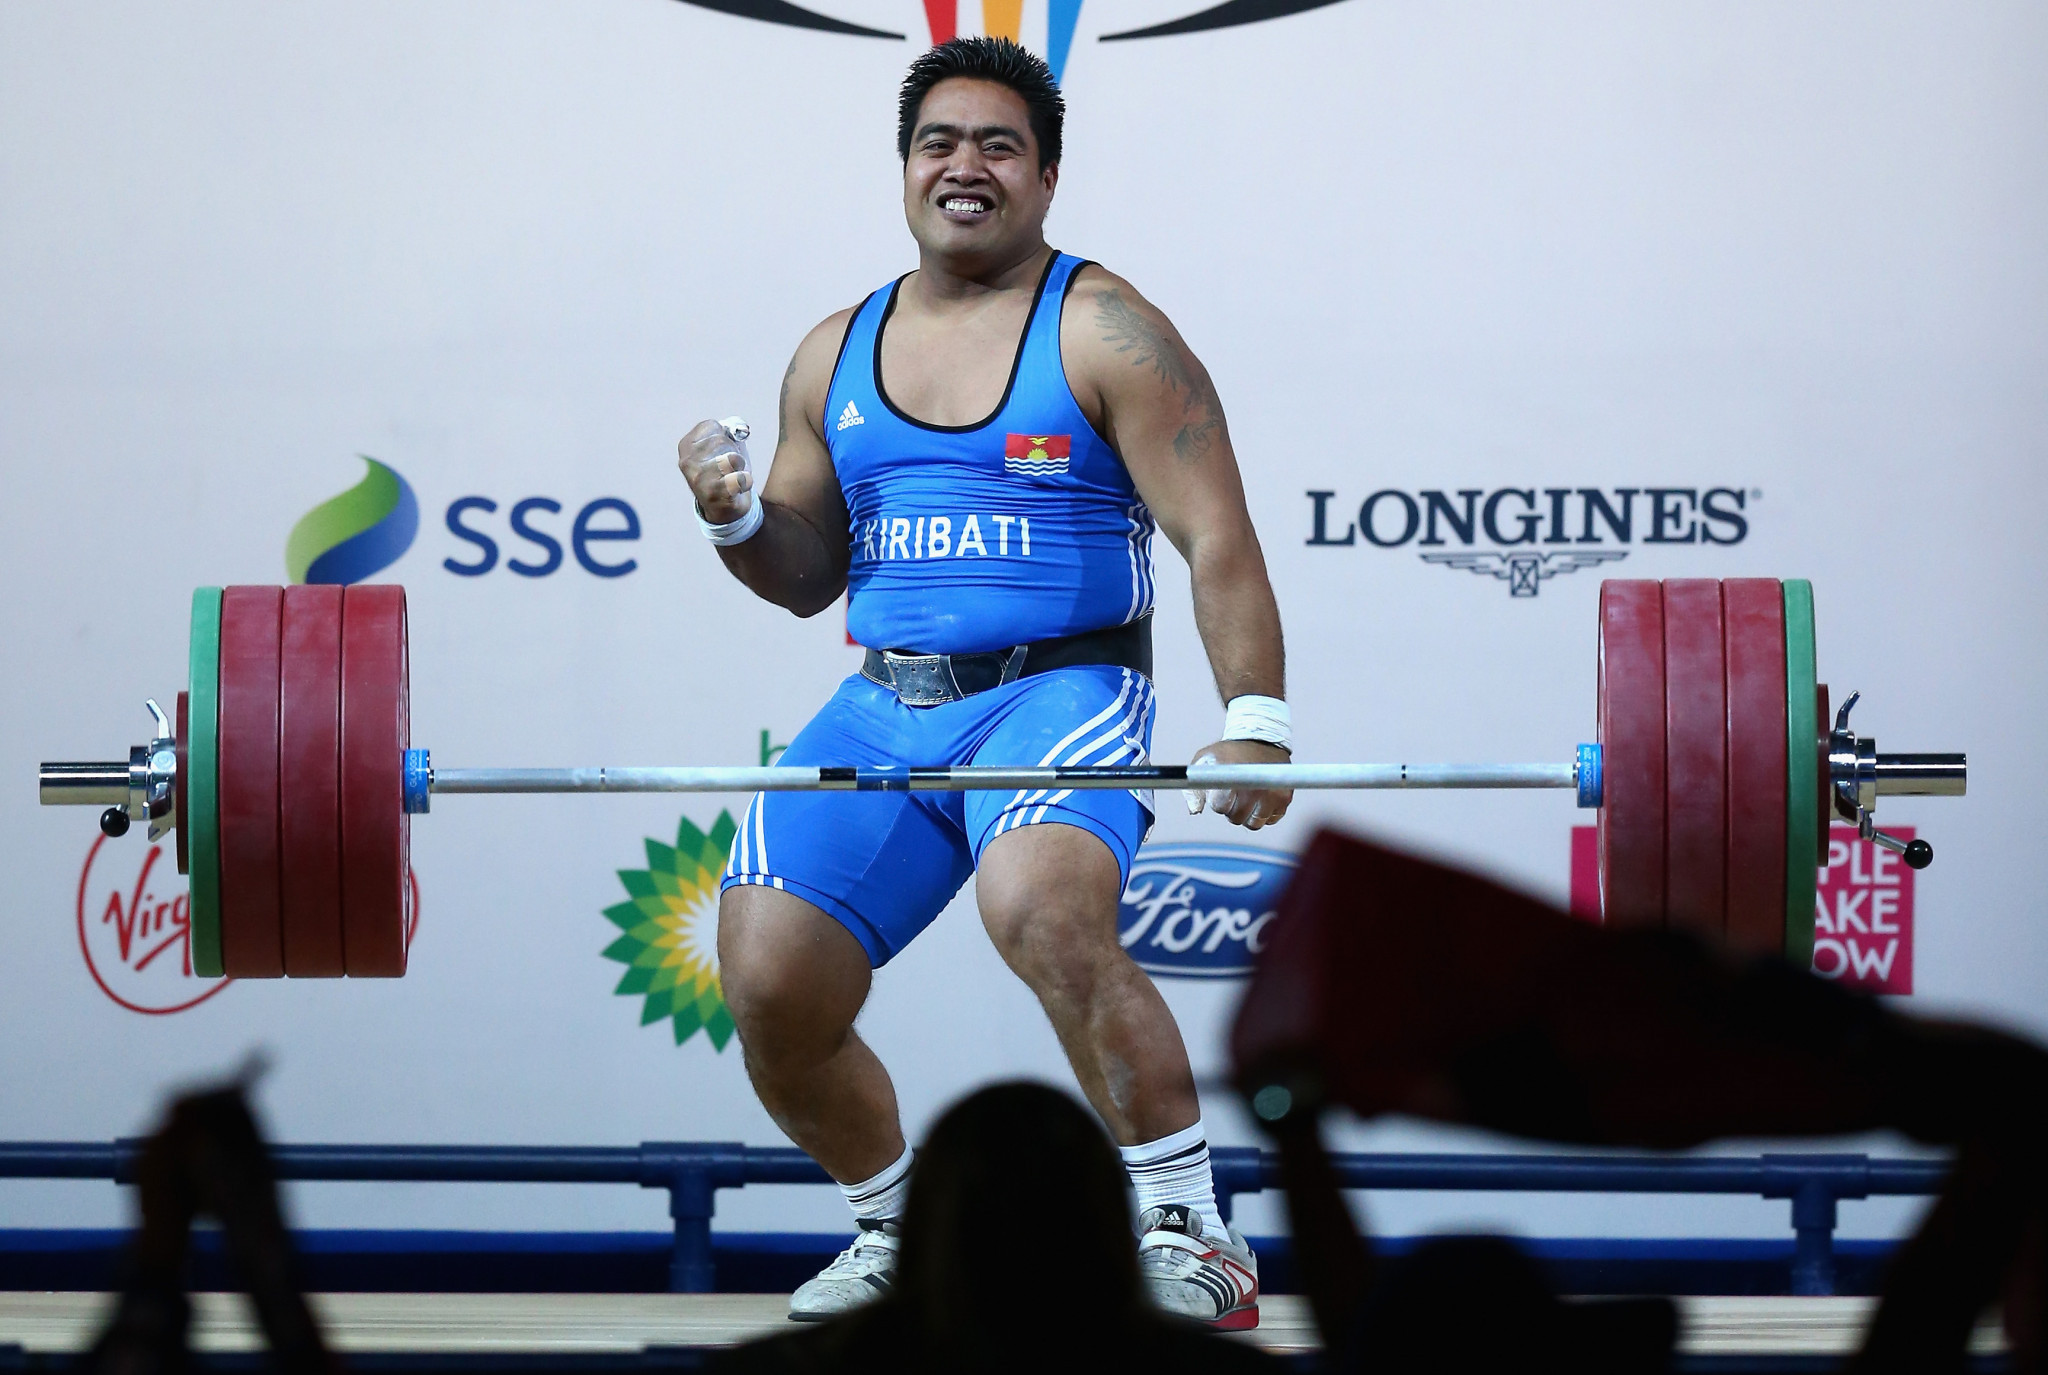 David Katoatau won the Commonwealth Games gold medal at Glasgow 2014 ©Getty Images